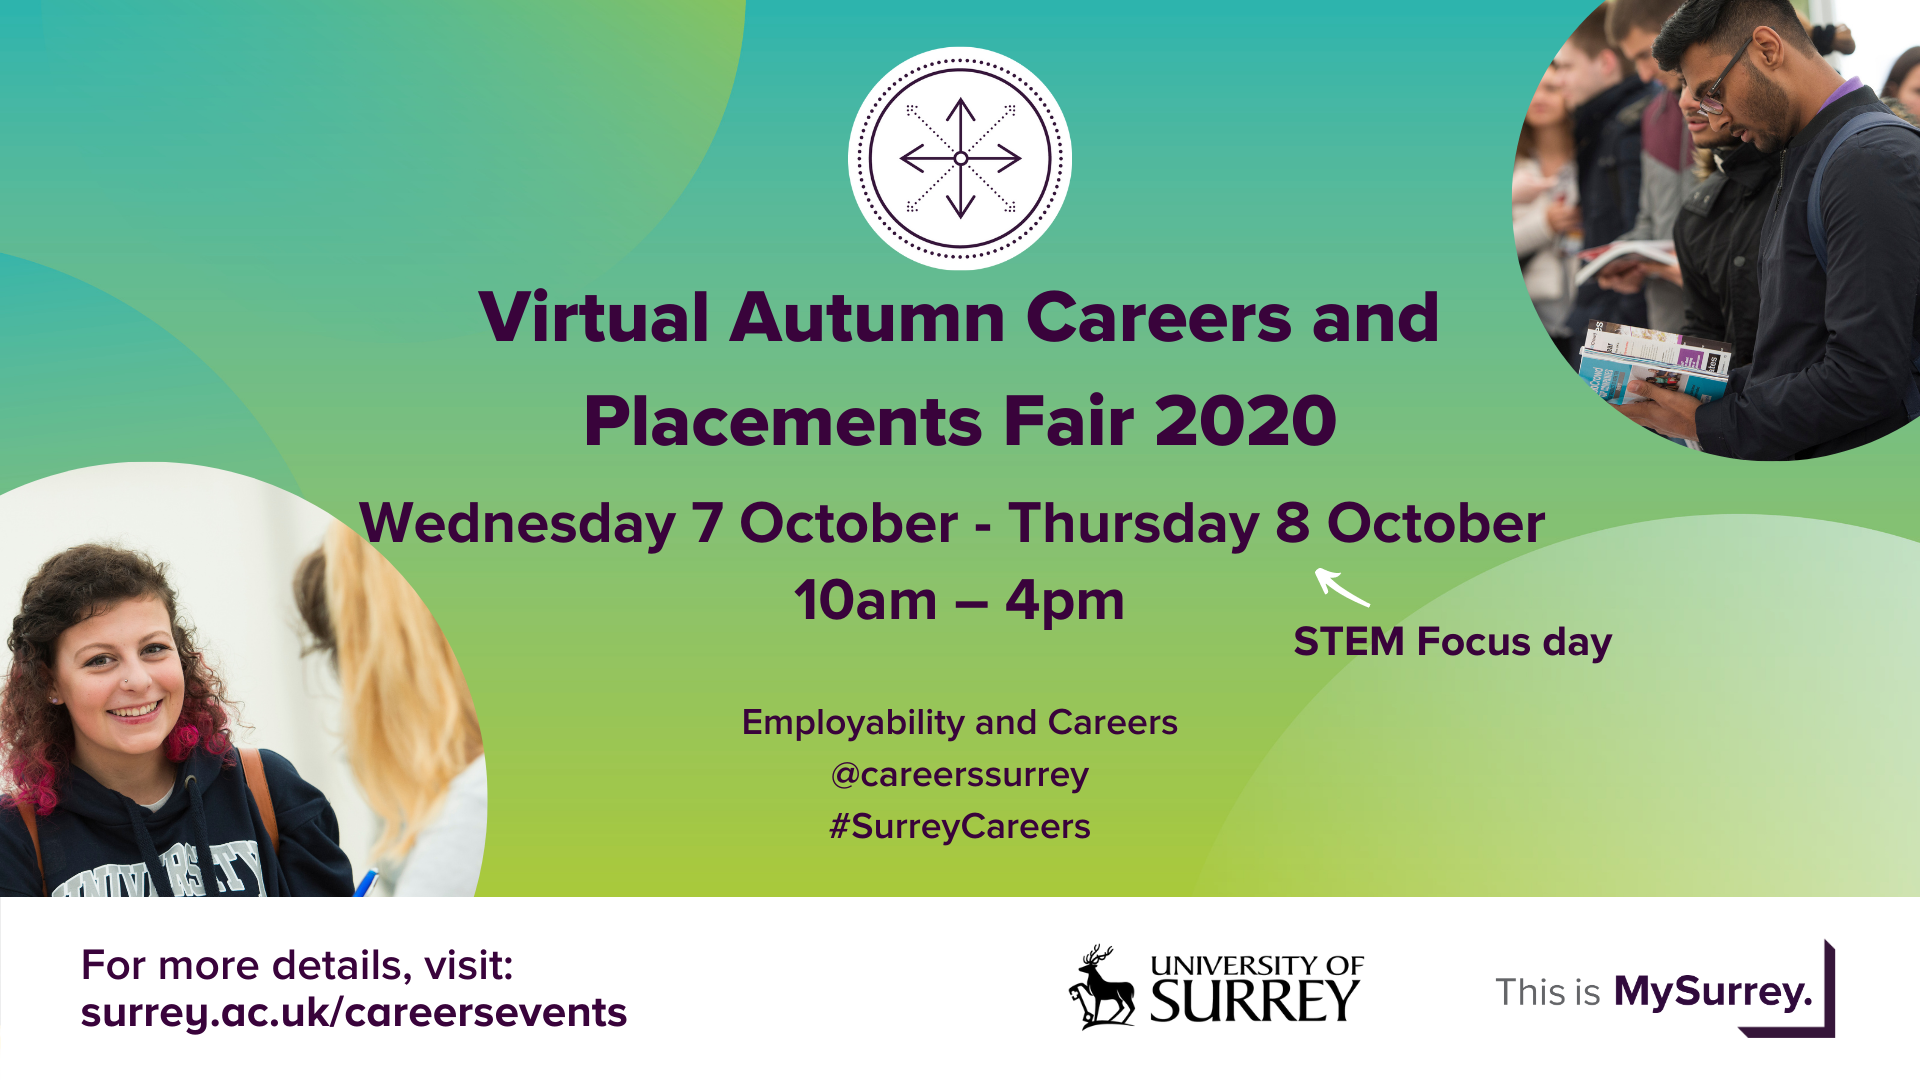 A poster for the Virtual Autumn Careers and Placements Fair on 7 and 8 October 2020